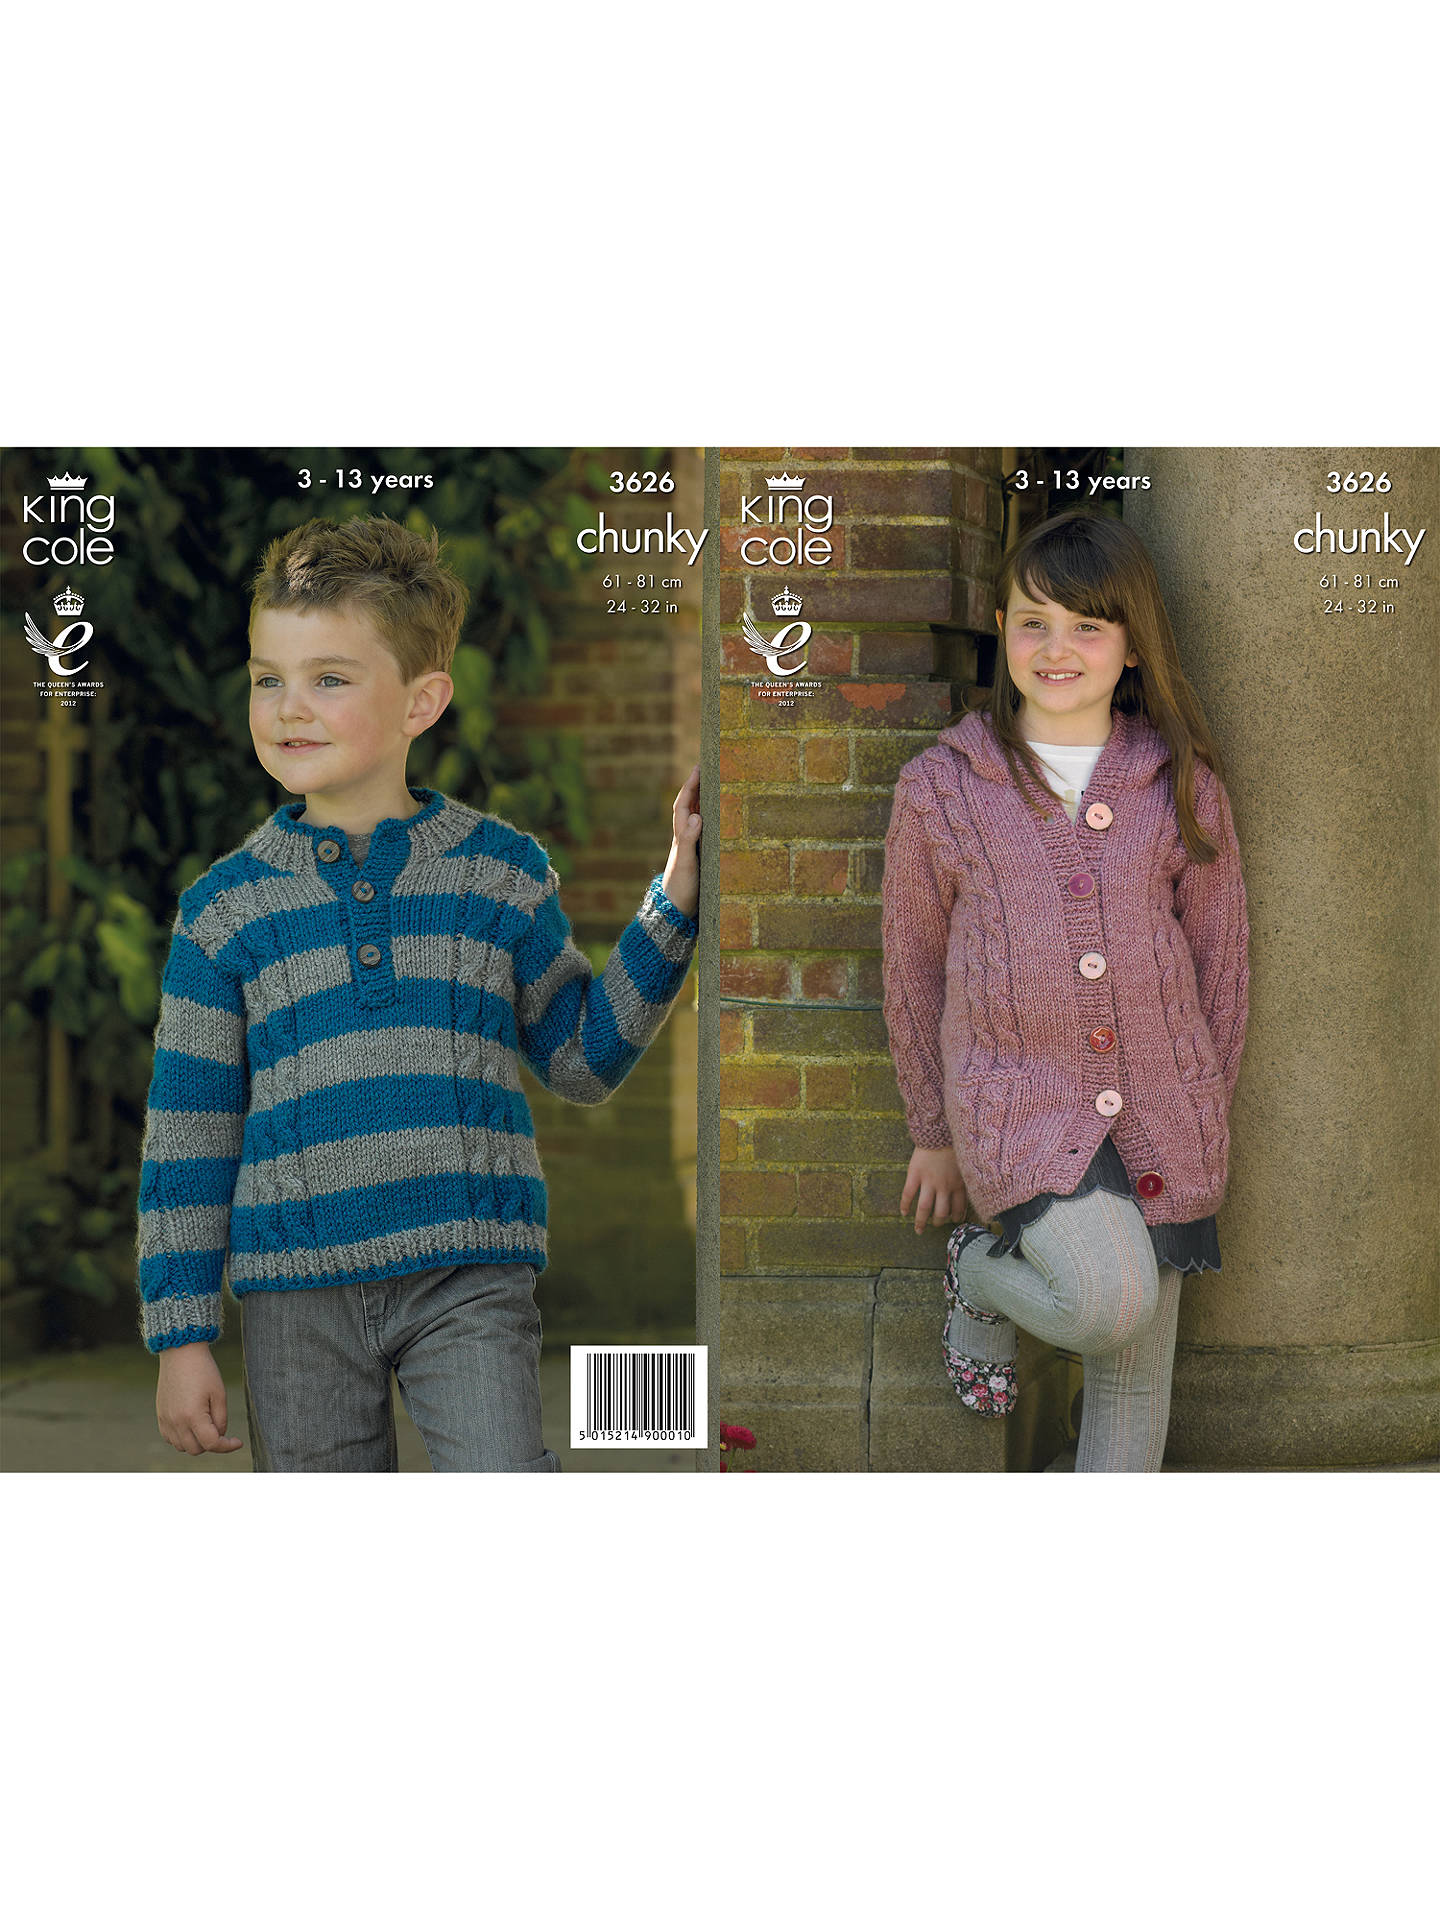 7001989d7 King Cole Children s Chunky Jumper and Cardigan Knitting Pattern ...